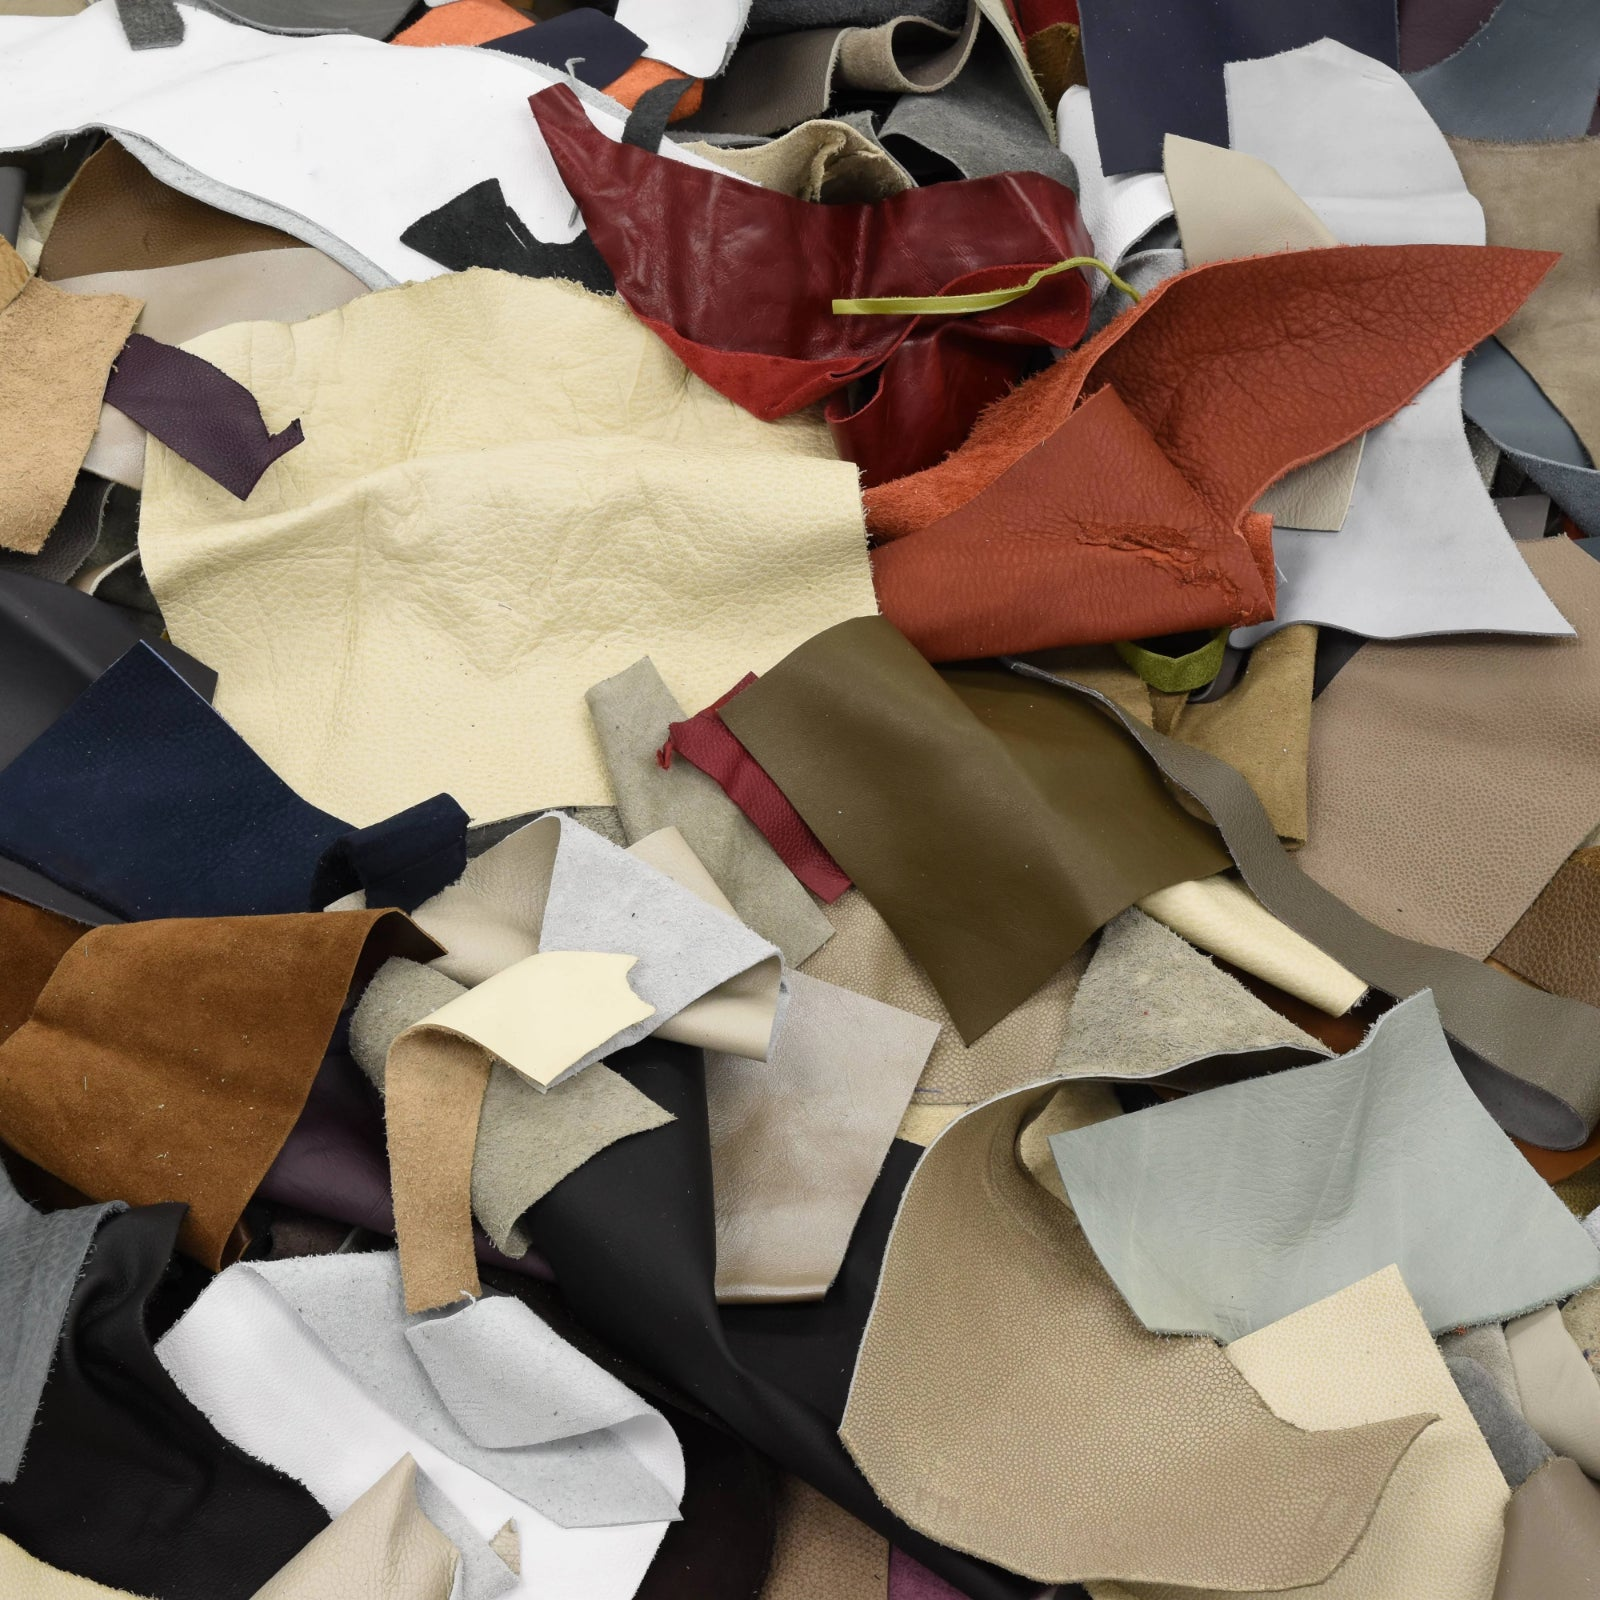 Upholstery Scrap - Pick Size - Cowhide Leather 1 Pound Remnants 3-4 oz Color Mix, Small